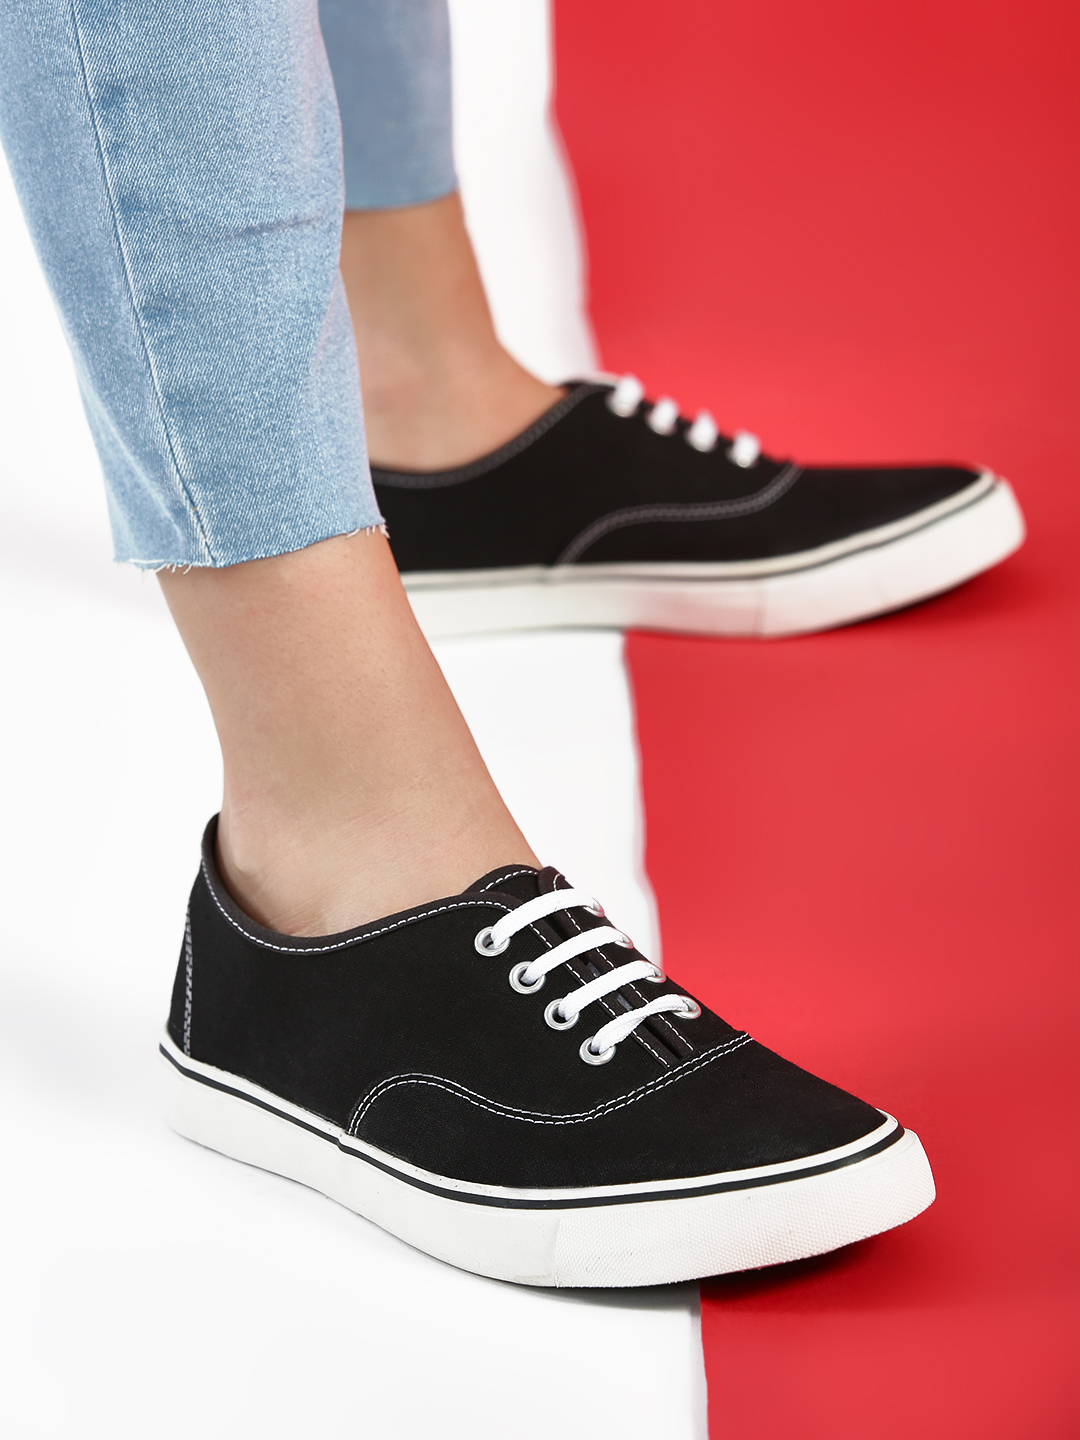 KOOVS Black Lace-Up Plimsoll Shoes 1